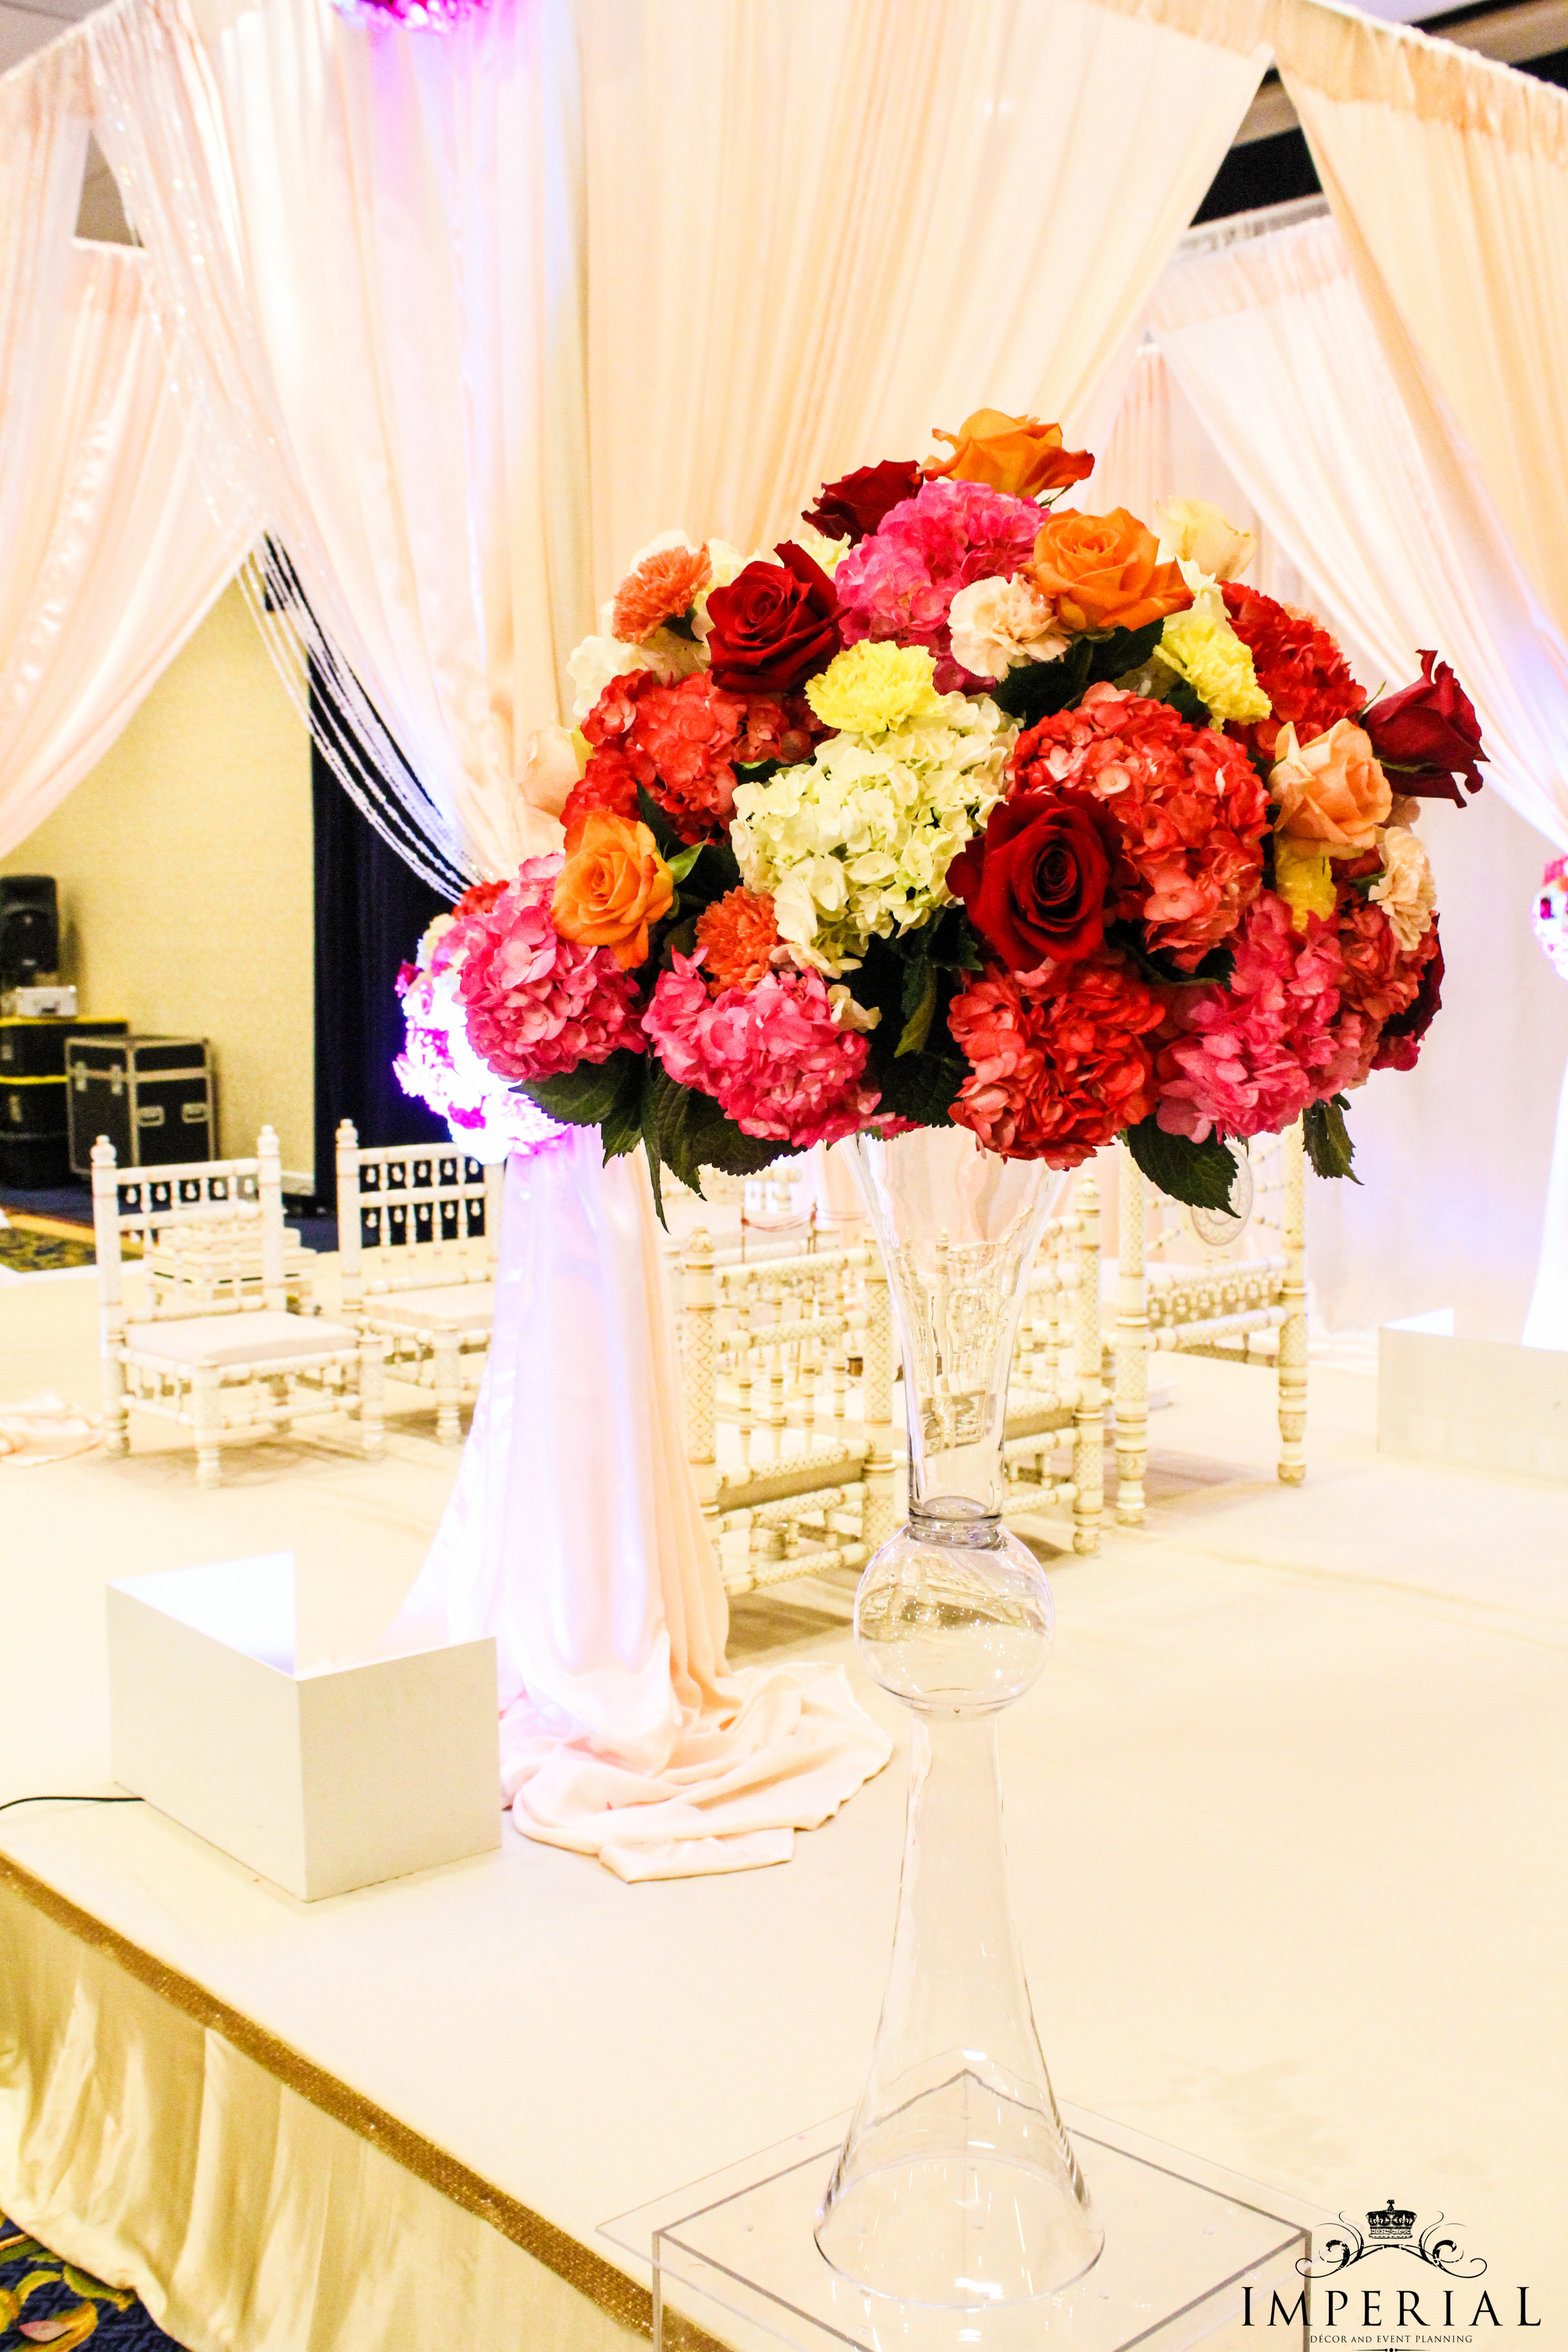 Imperial Decorations - Indian Wedding Floral Decoration.jpg